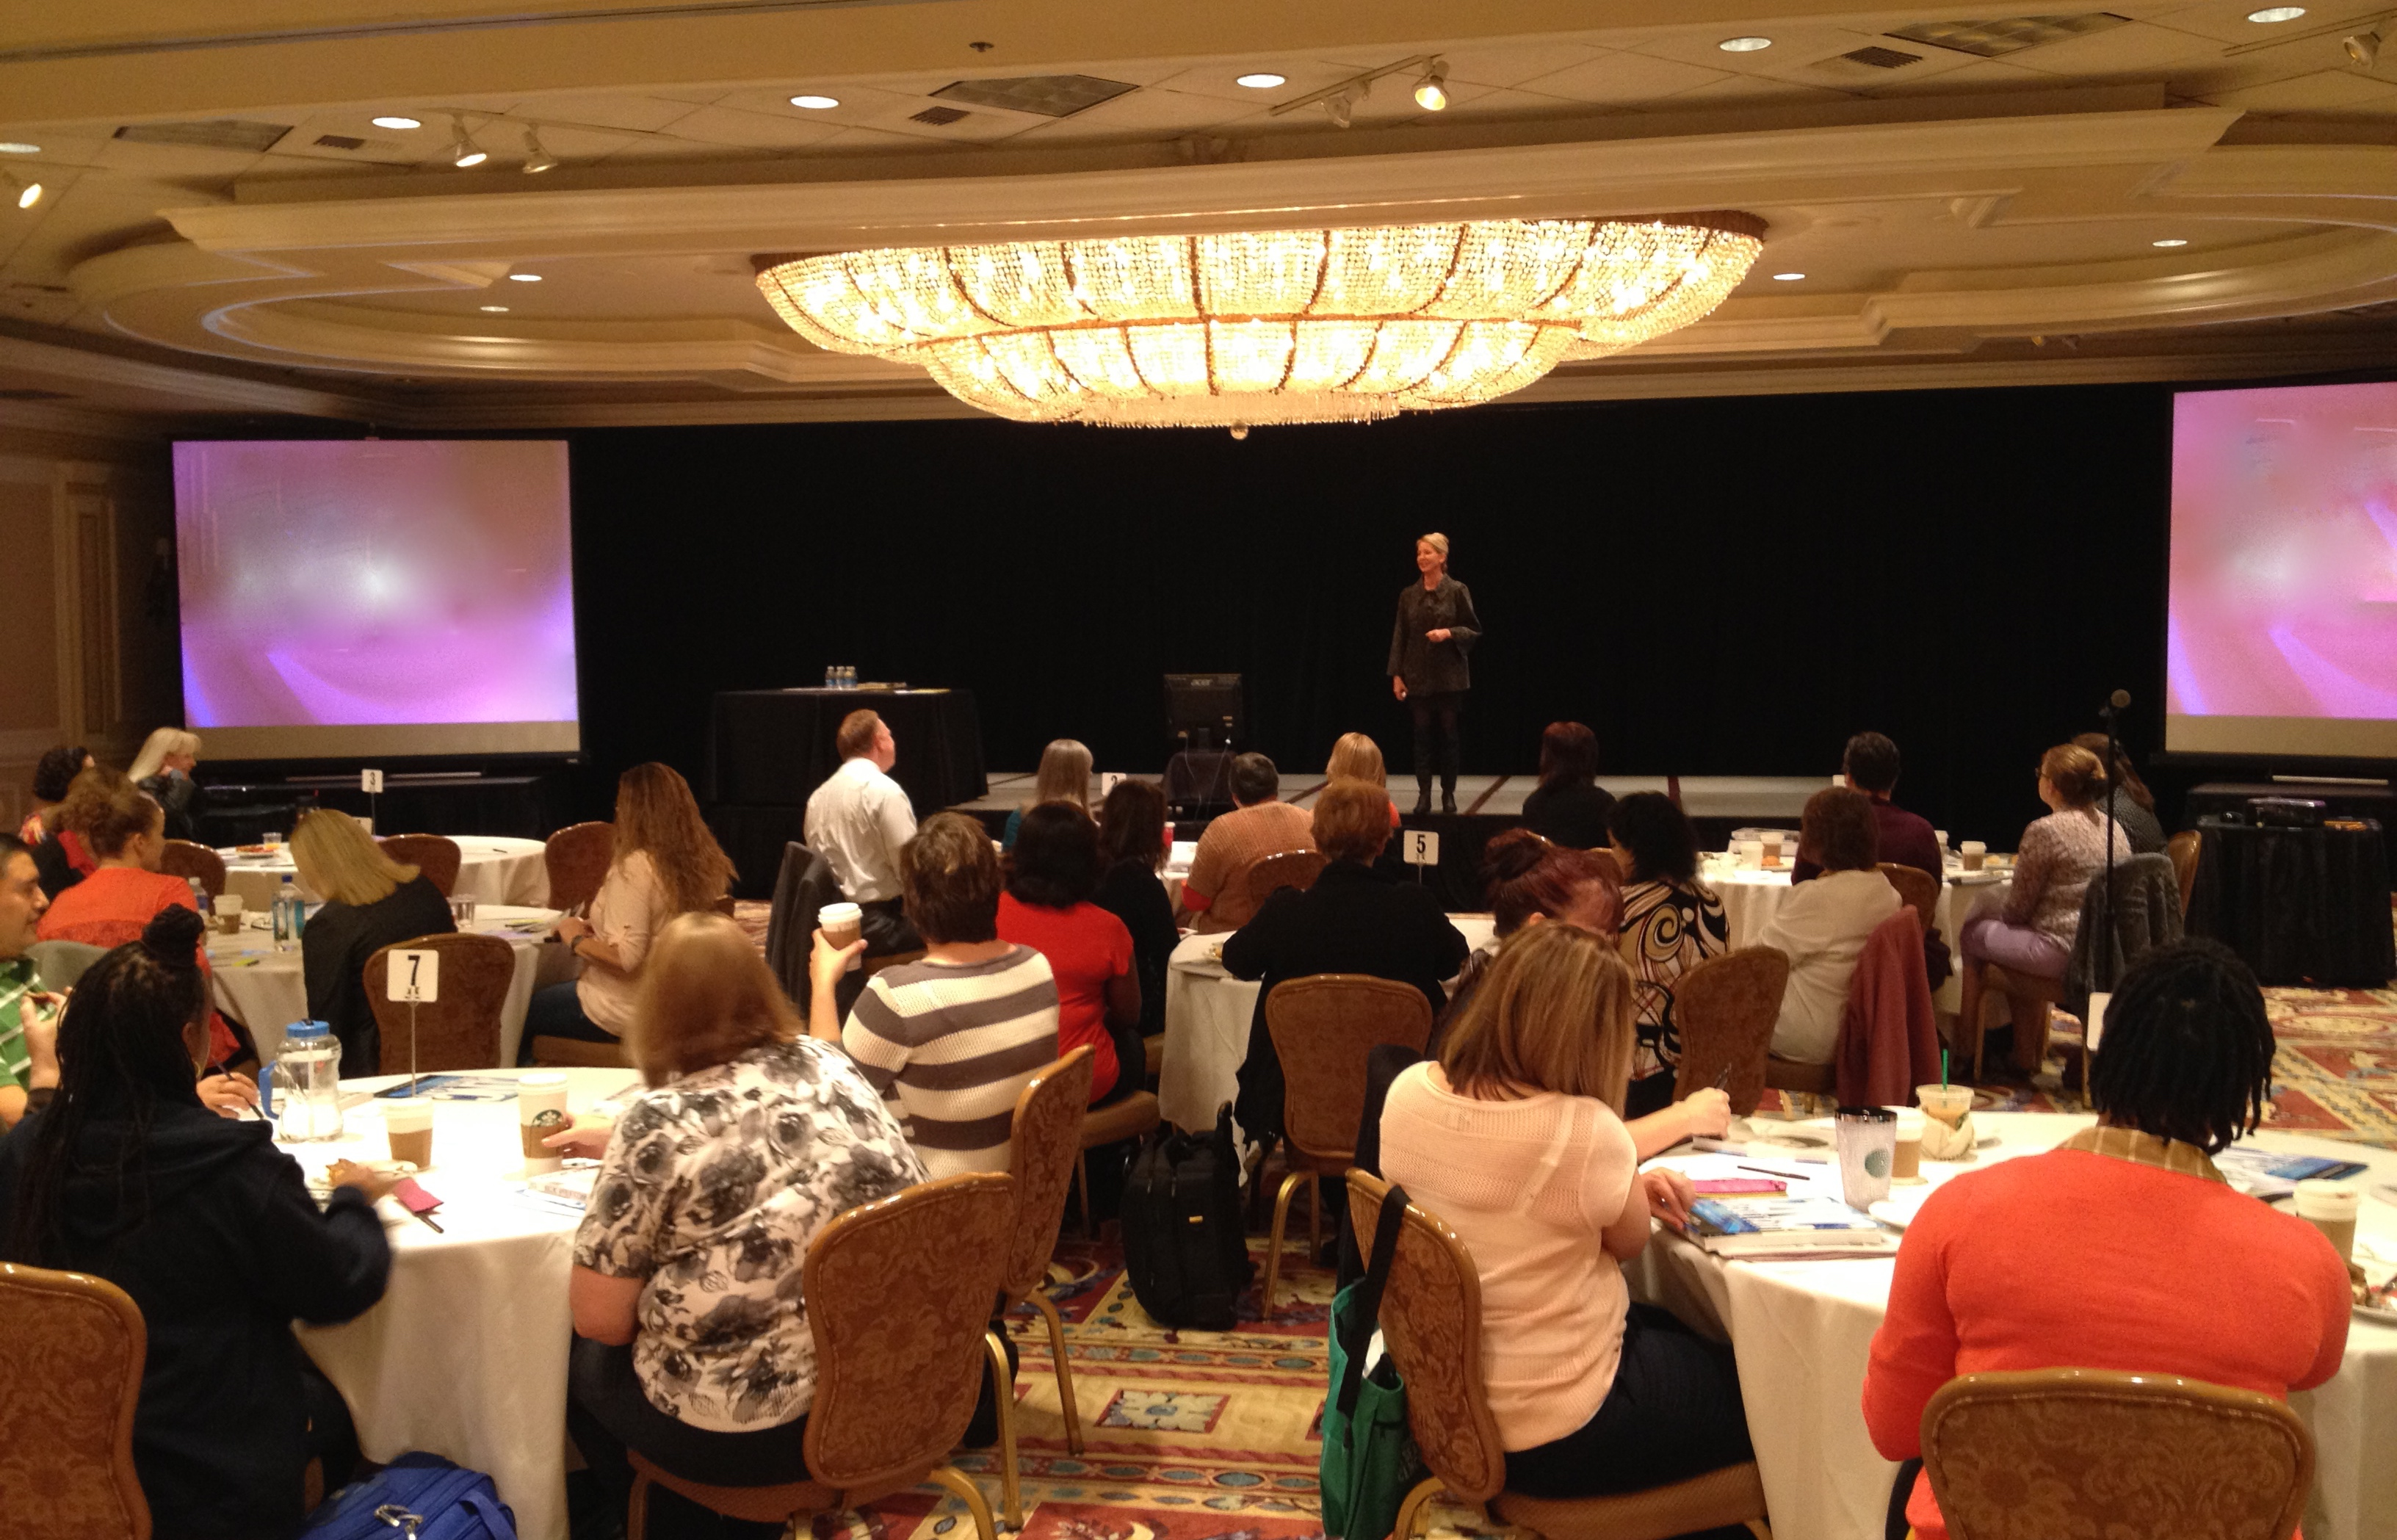 Presenting to Healthcare Professionals in Las Vegas in 2015.